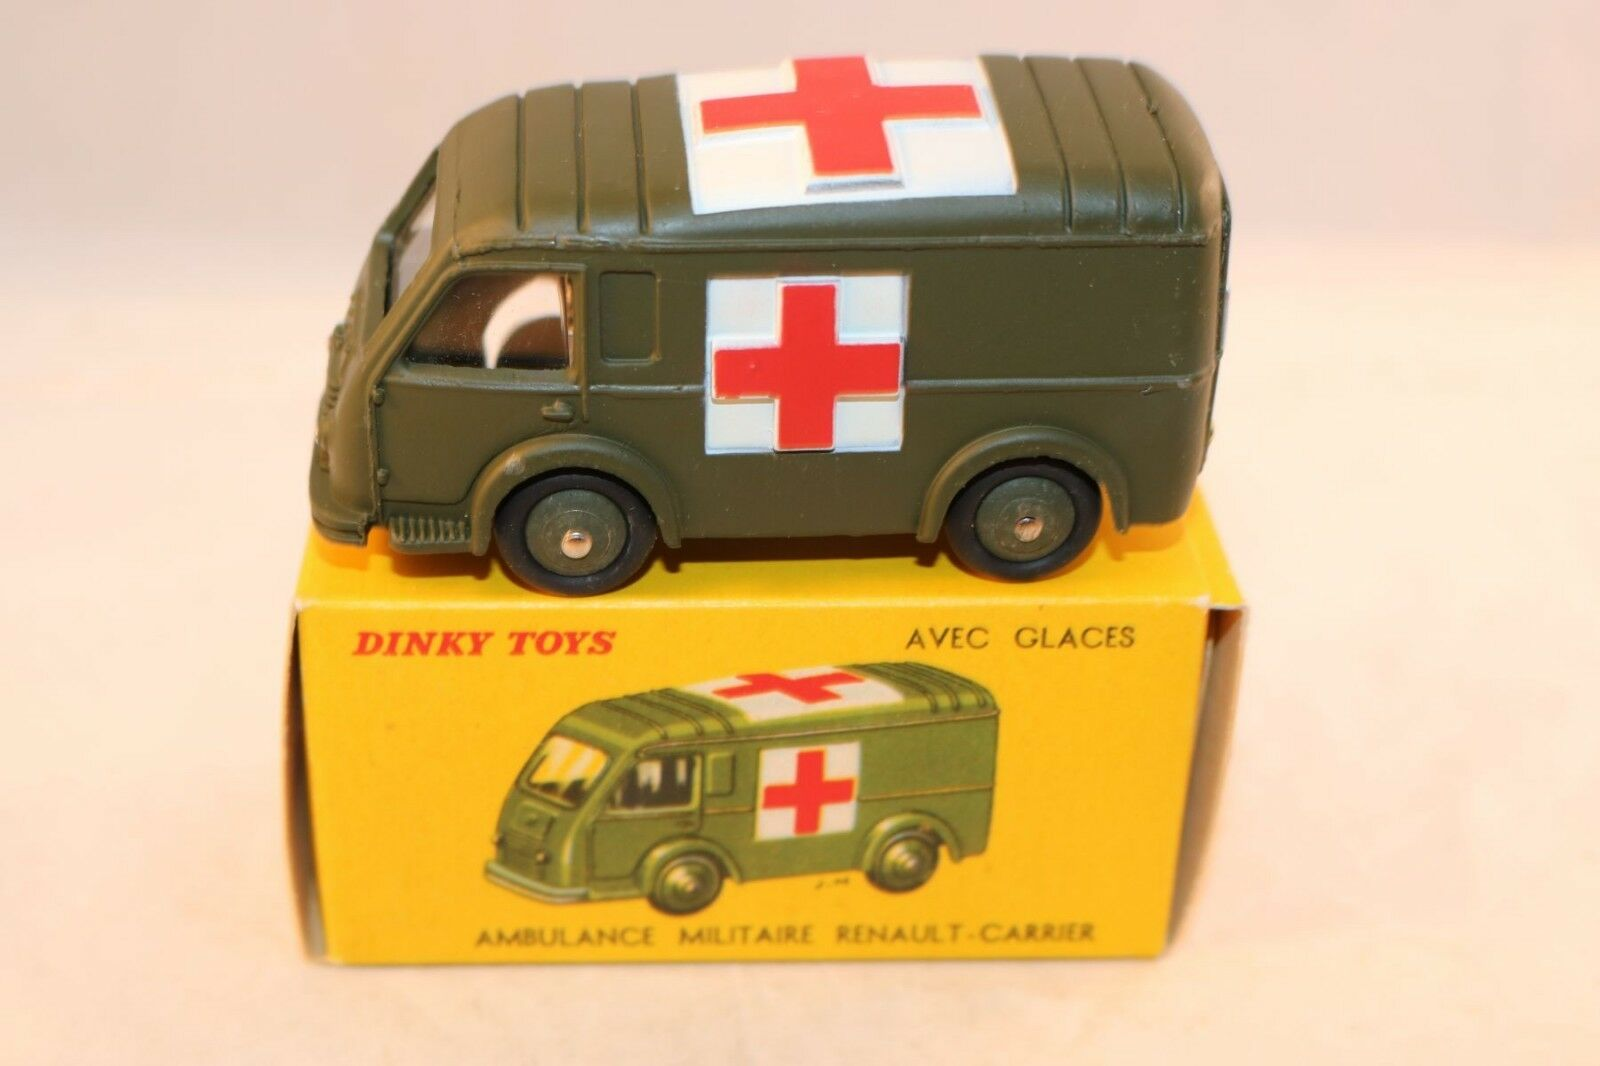 Dinky Toys 80 F Renault Carrier Military Ambulance 99% mint in a SUPER box.